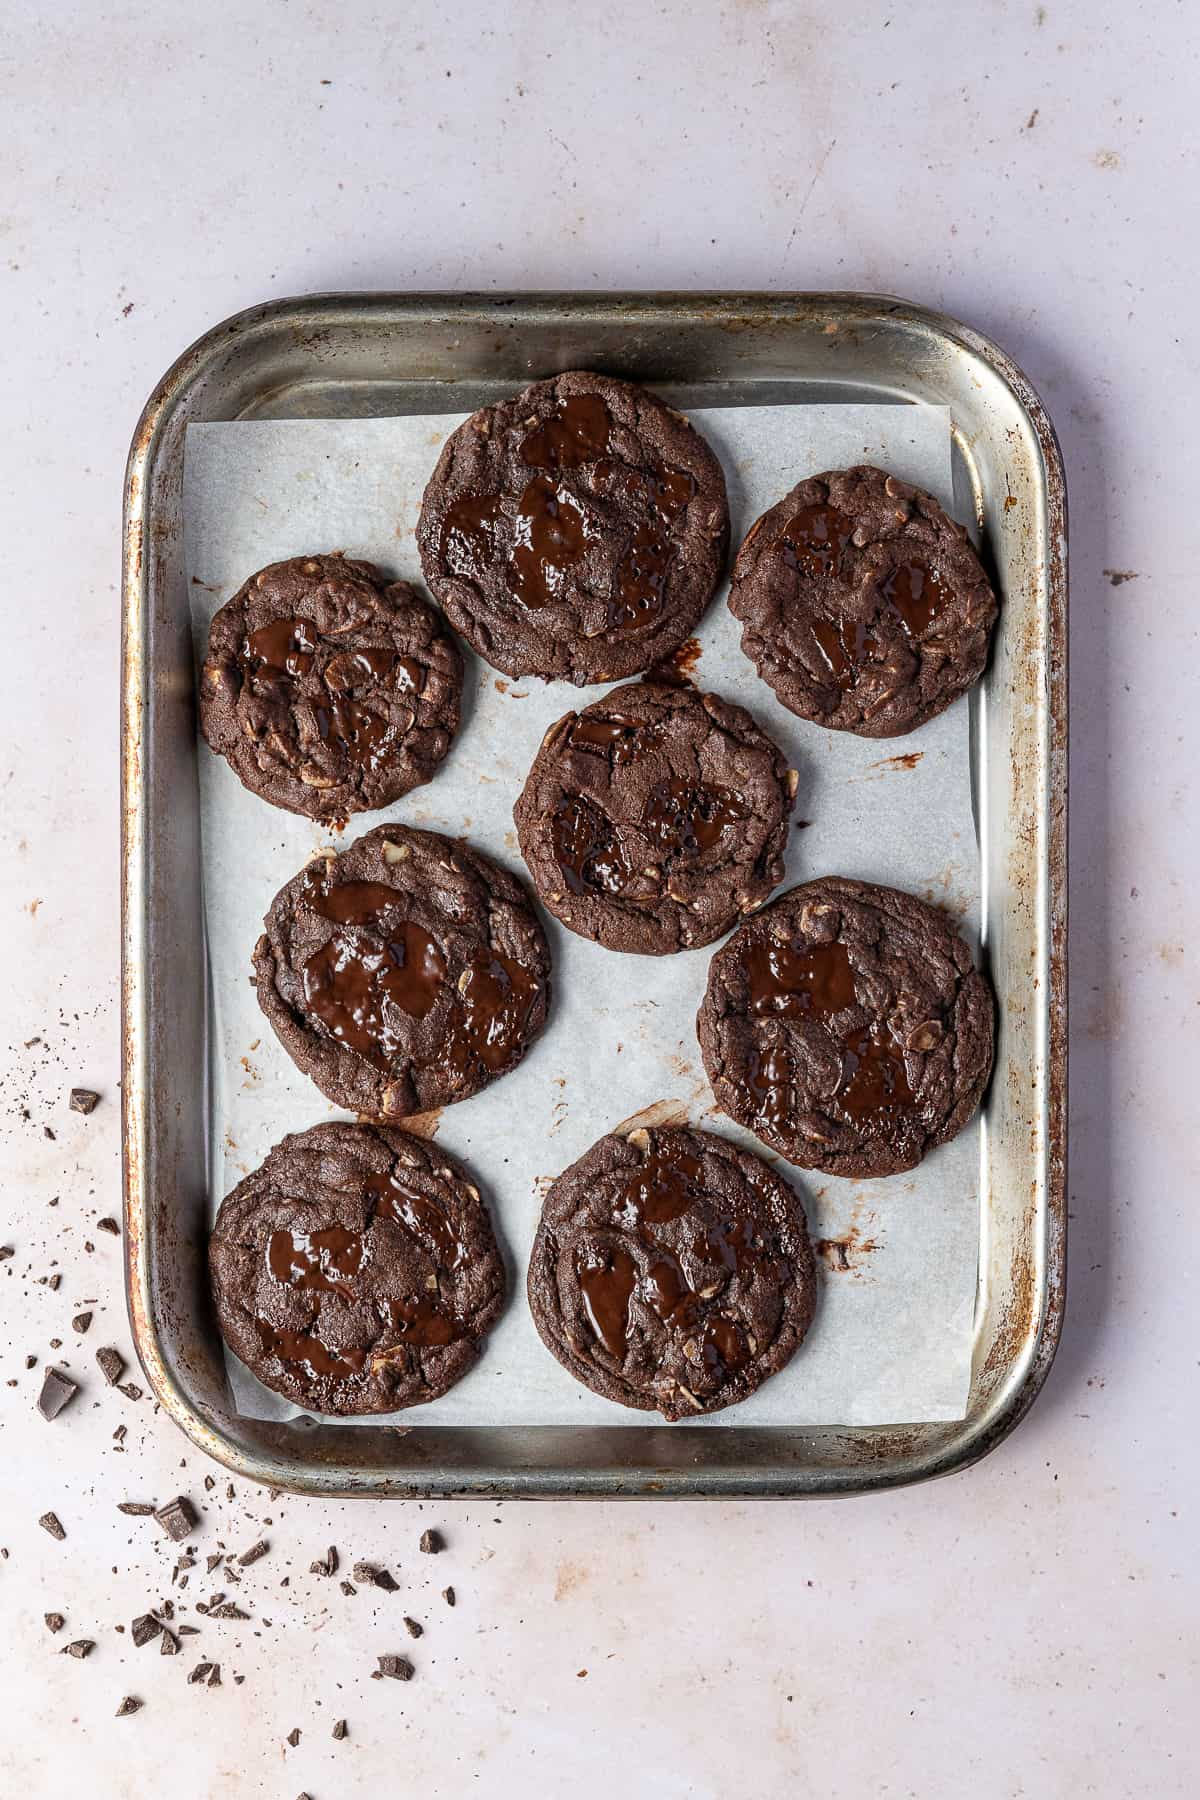 Vegan double chocolate almond cookies on a metal baking tray.